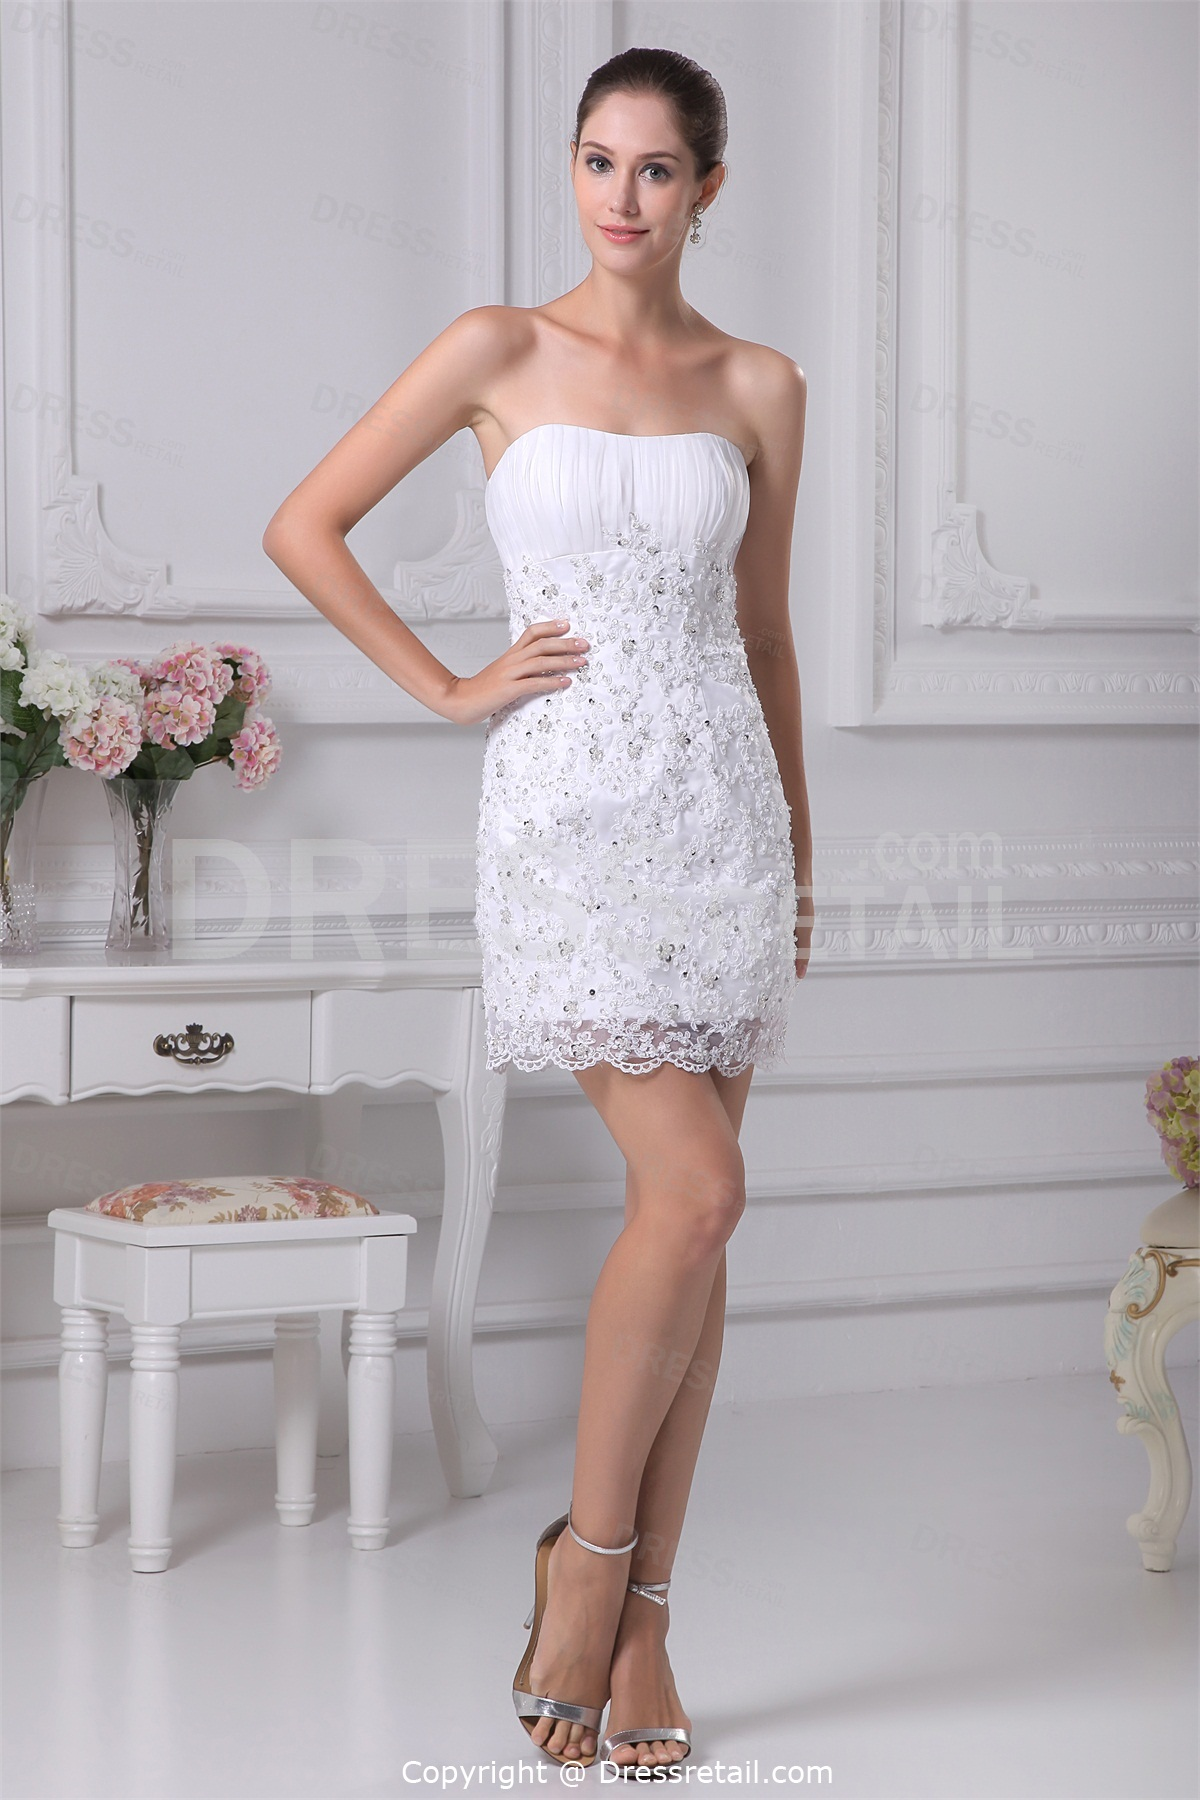 Looking classical and fashionable with lace summer wedding dresses lace summer wedding dresses in short style junglespirit